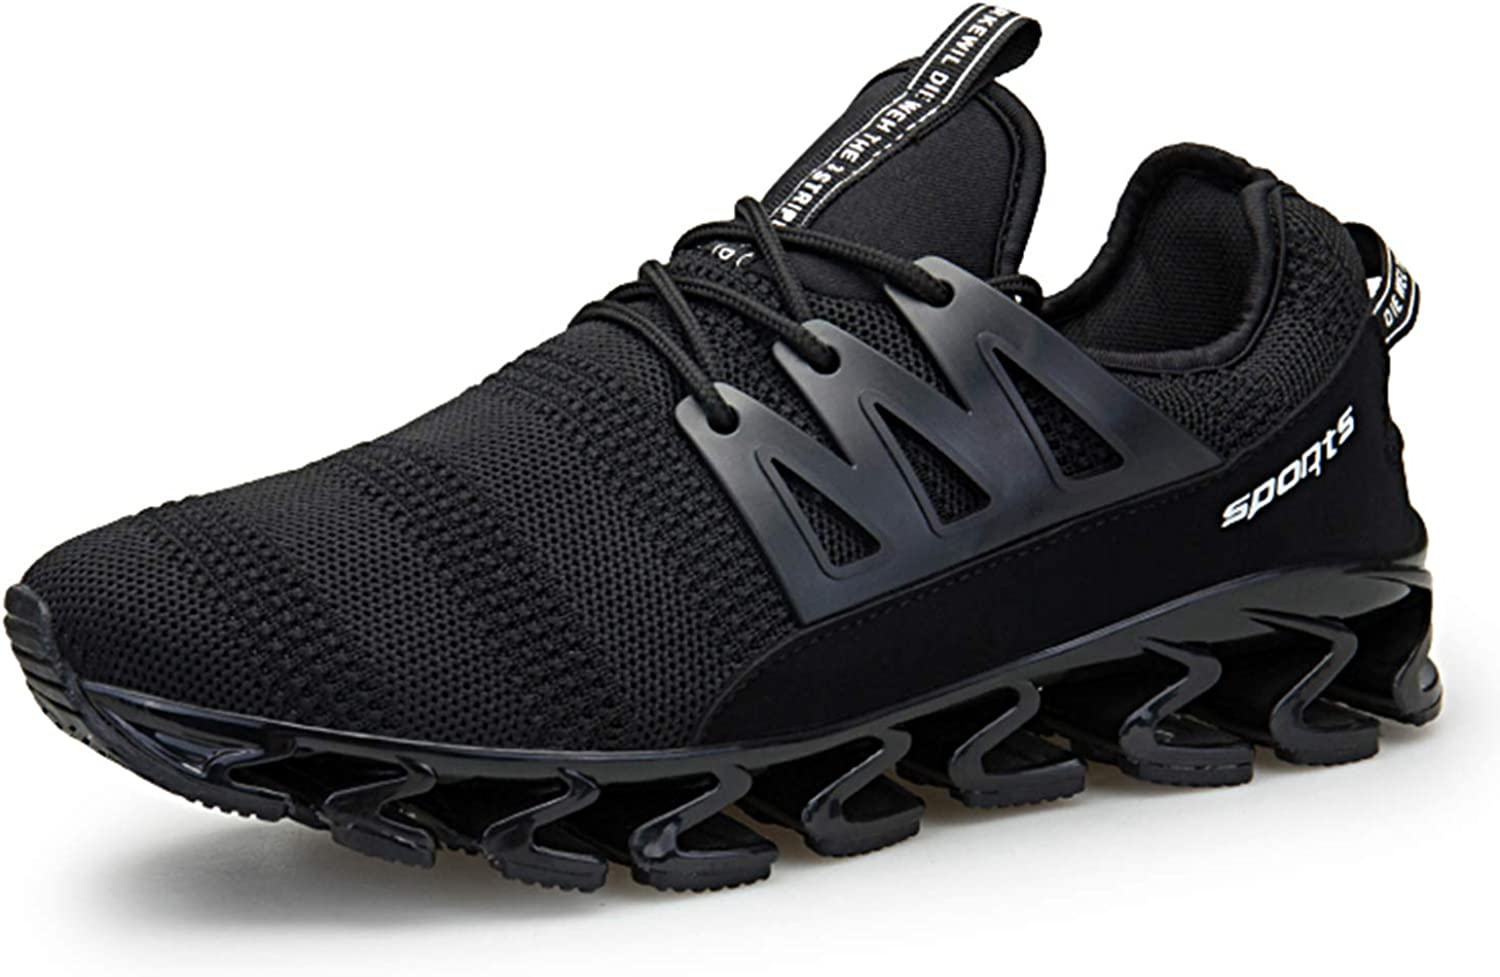 TSIODFO Springblade Sports Sneakers for Men Mesh Breathable Fashion Youth Big Boys Trail Walking shoes Black Green red